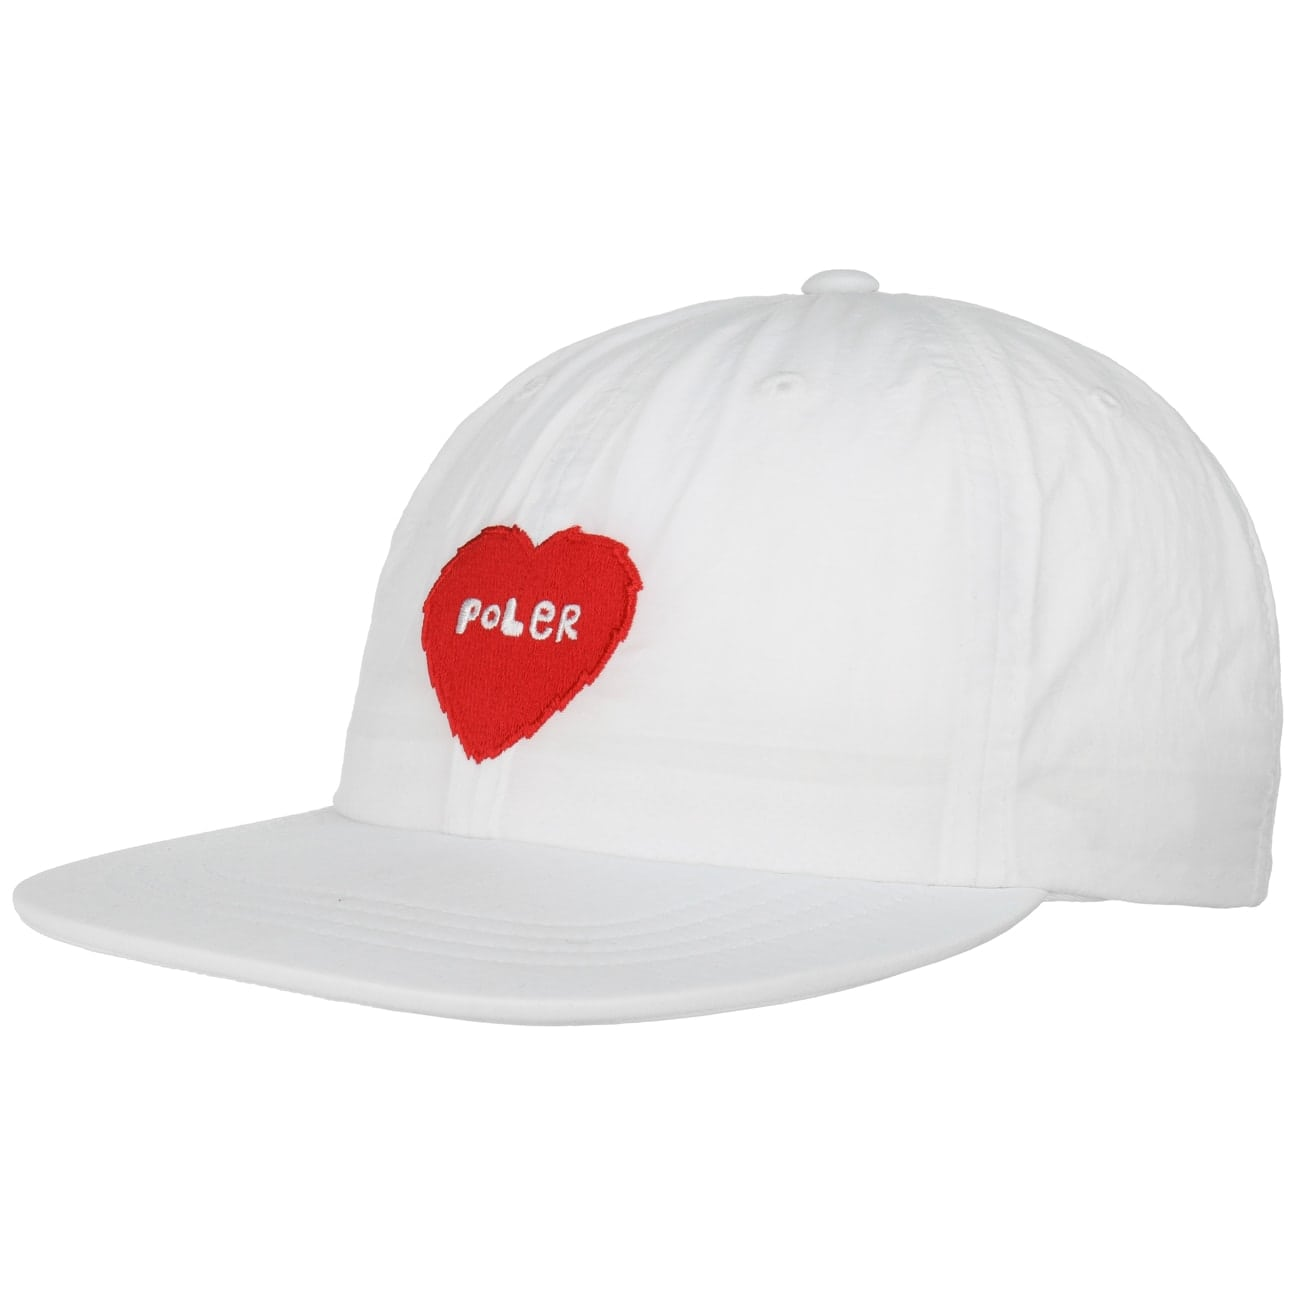 Gorra Furry Heart Soft Visor Nylon by Poler  gorra de baseball